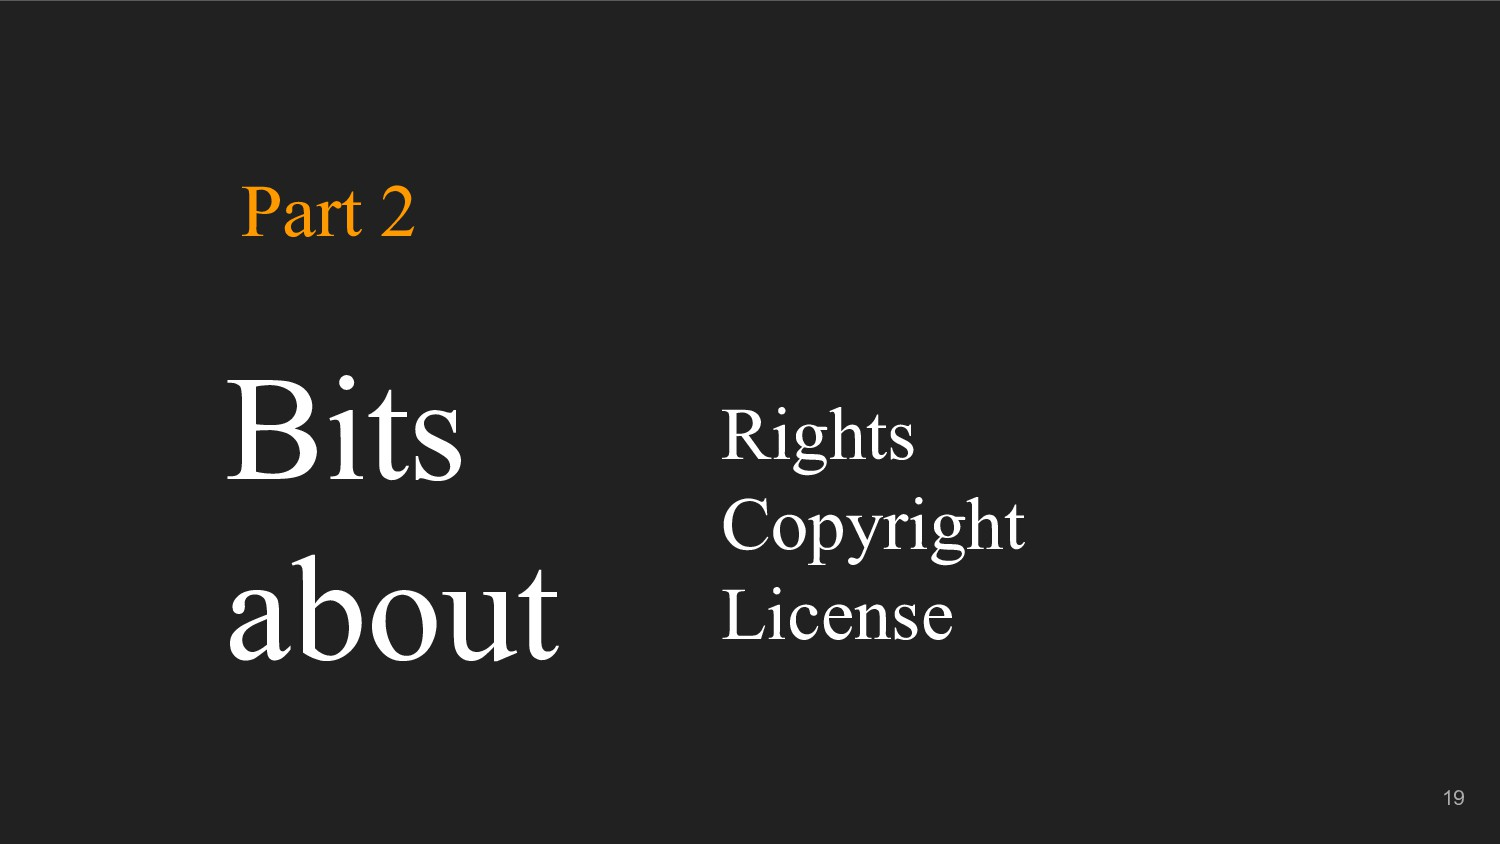 Rights Copyright License 19 Bits about Part 2